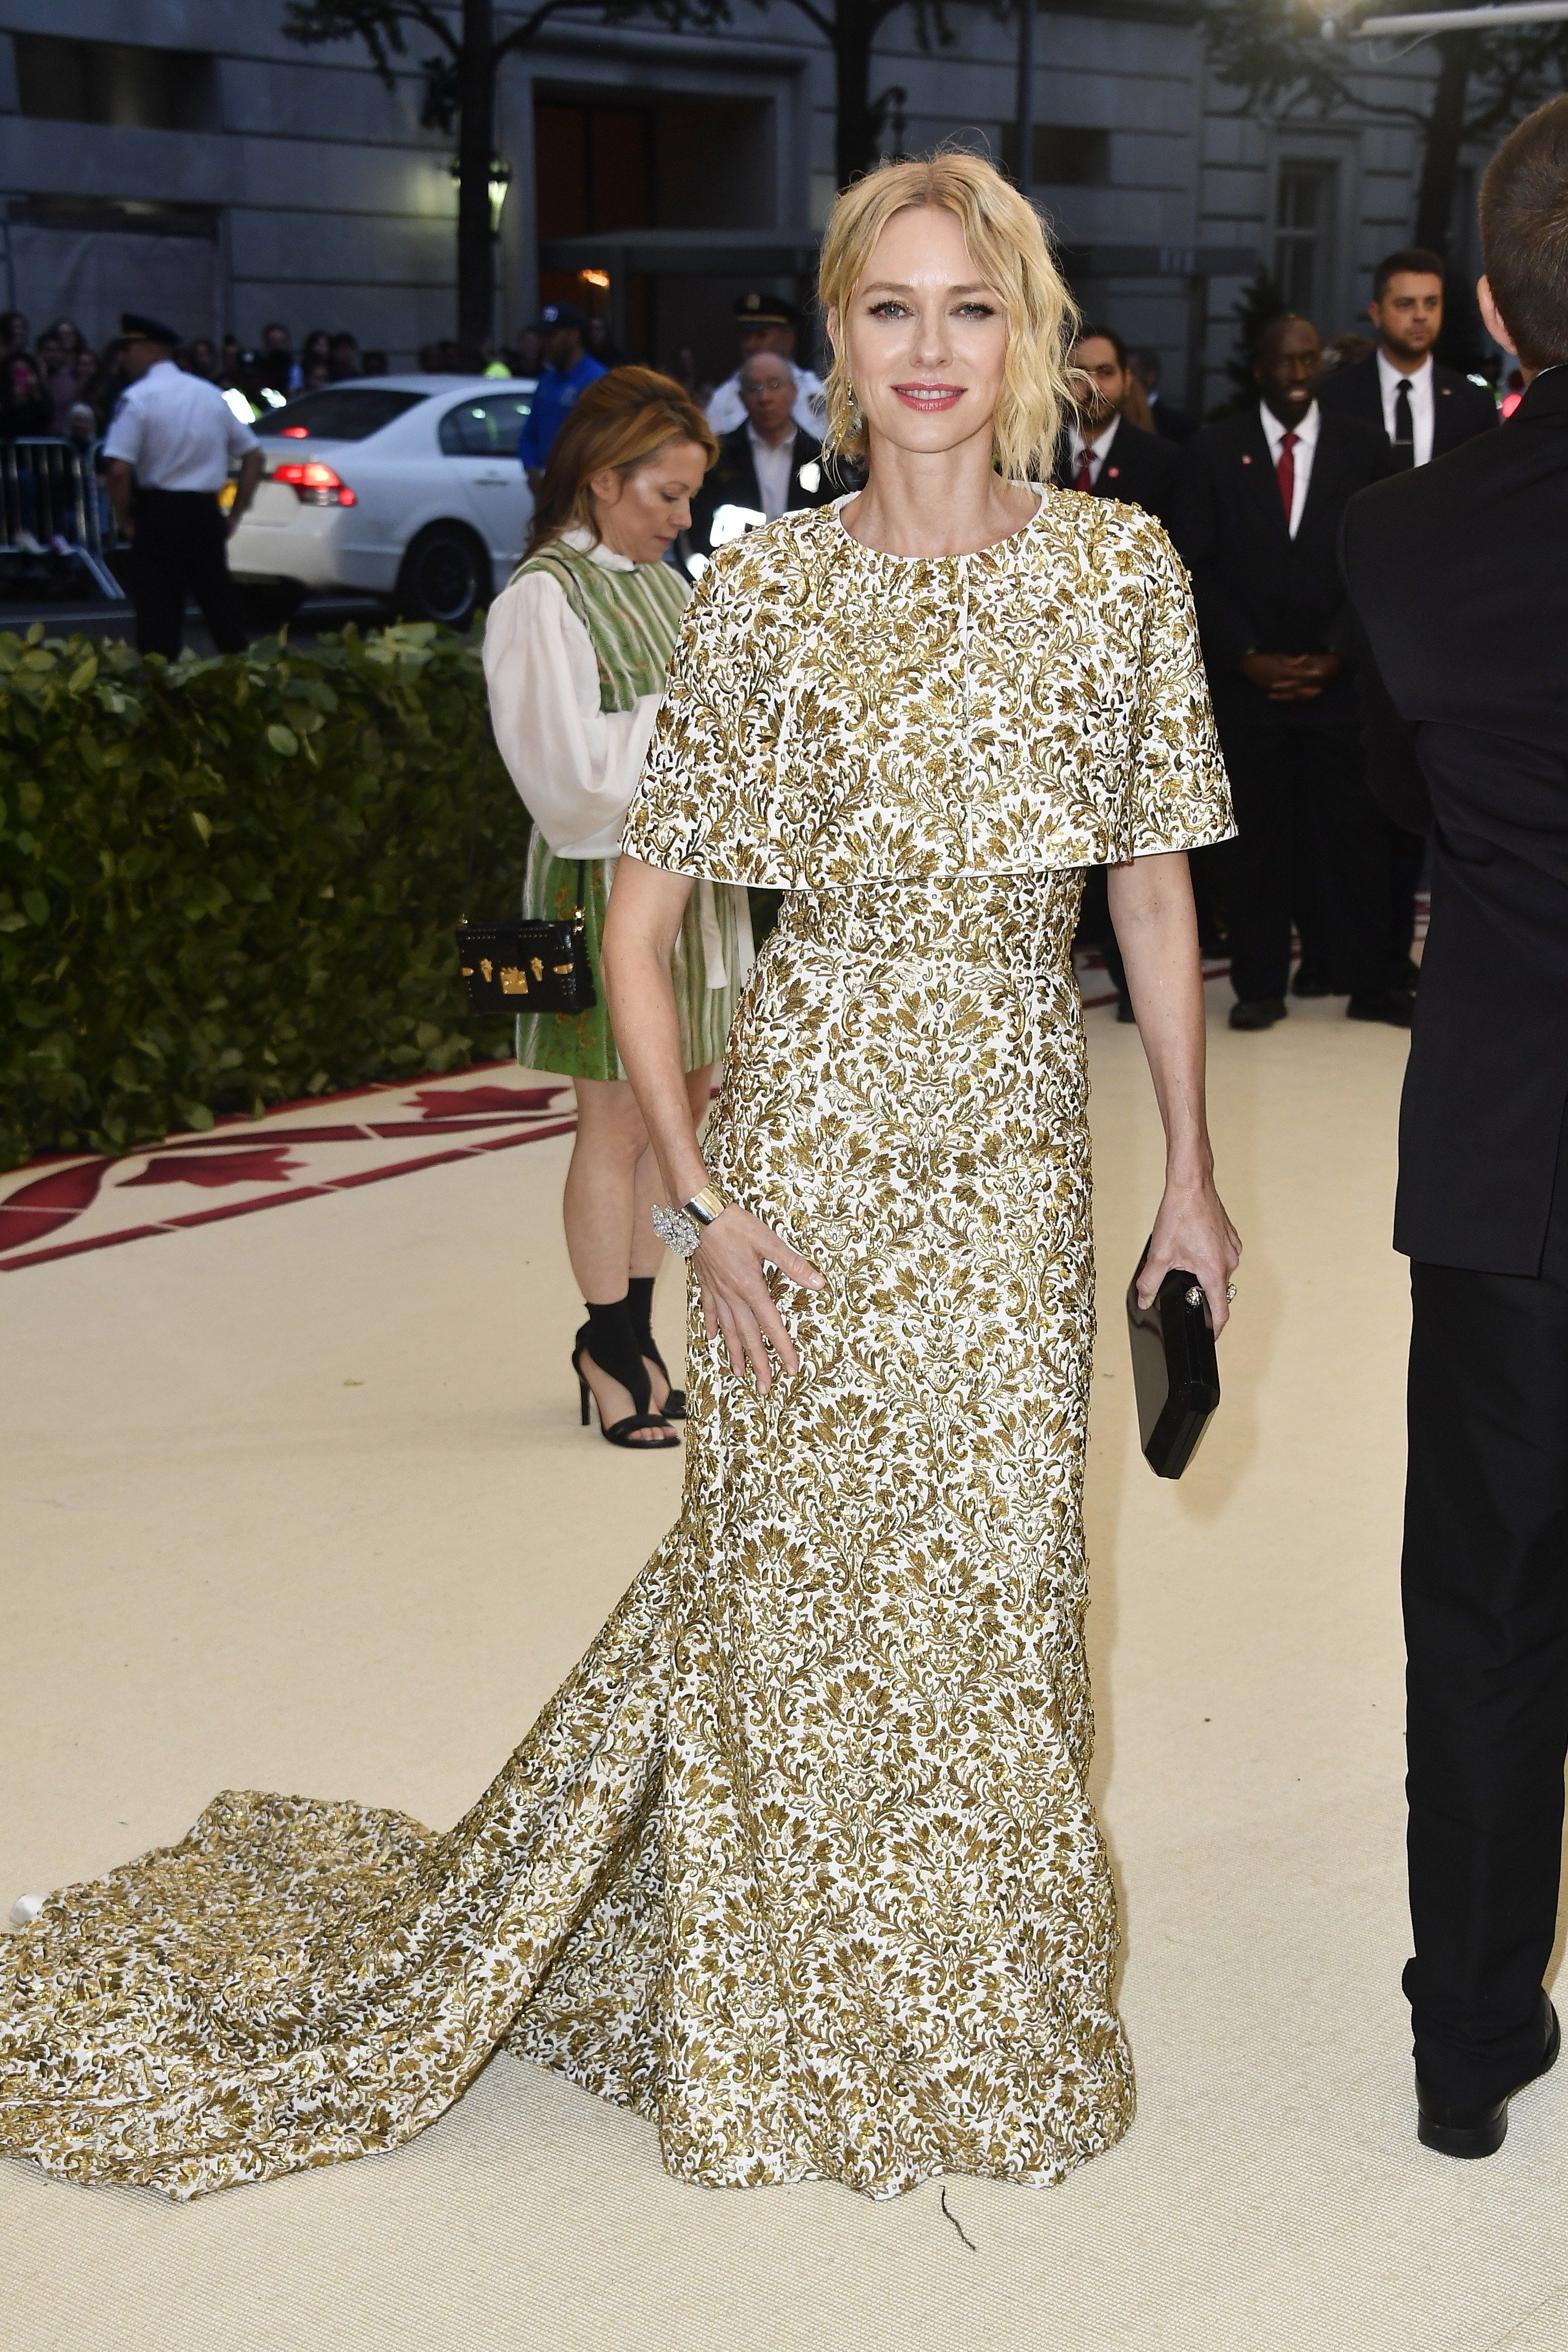 Met Gala 2018 Red Carpet: All the Celebrity Dresses and Fashion ...